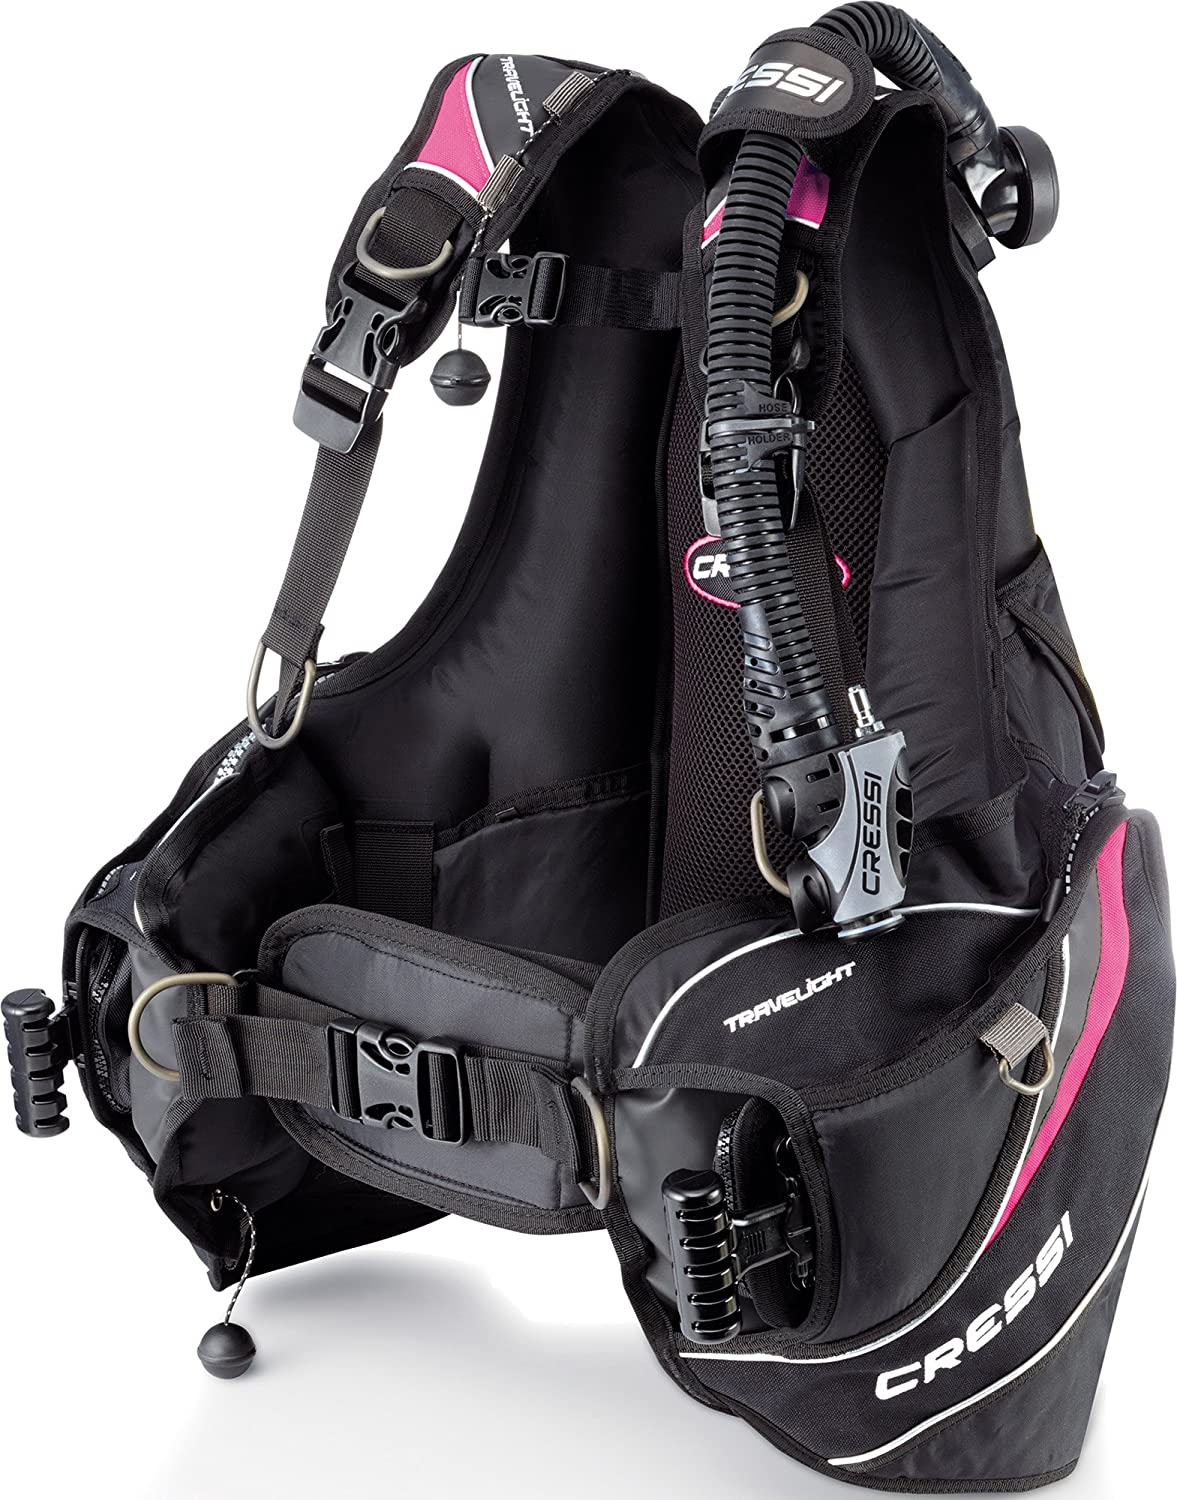 Cressi Women's Travellight BCD outlet Popular products